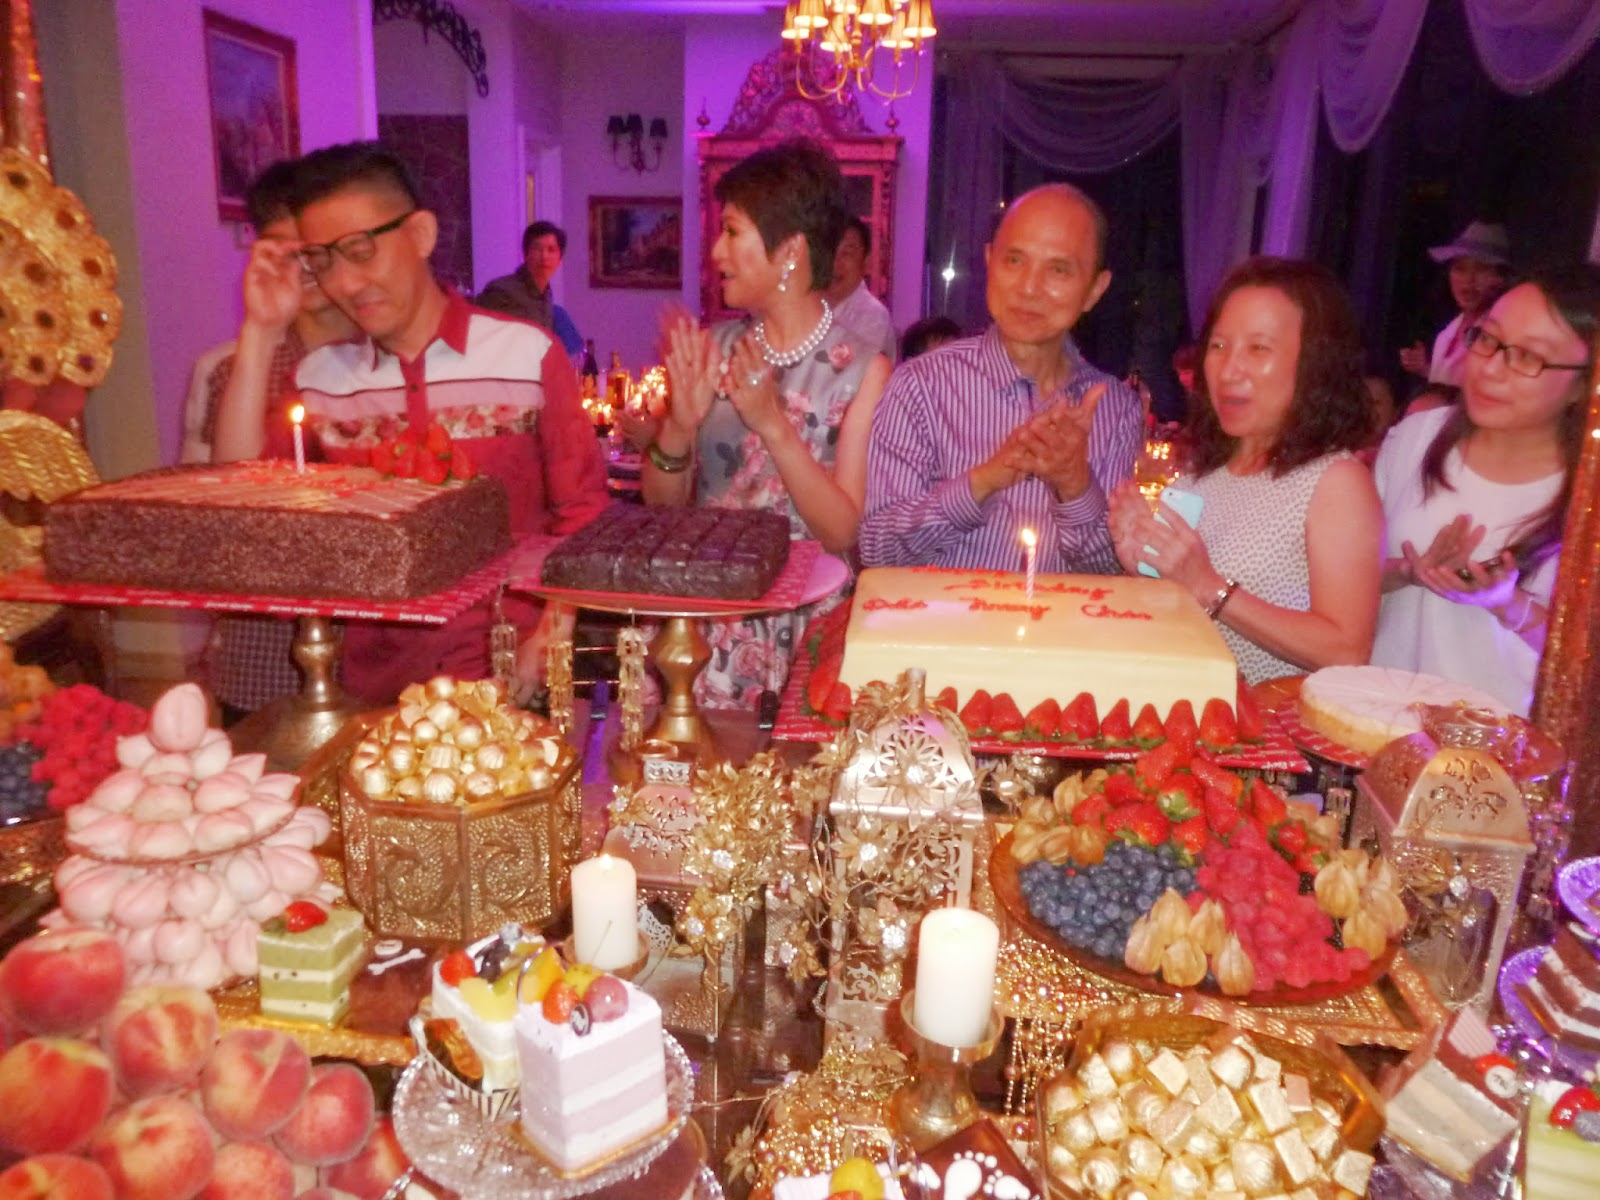 Kee hua chee live!: winnie sin hosts birthday party for hubby sin ...